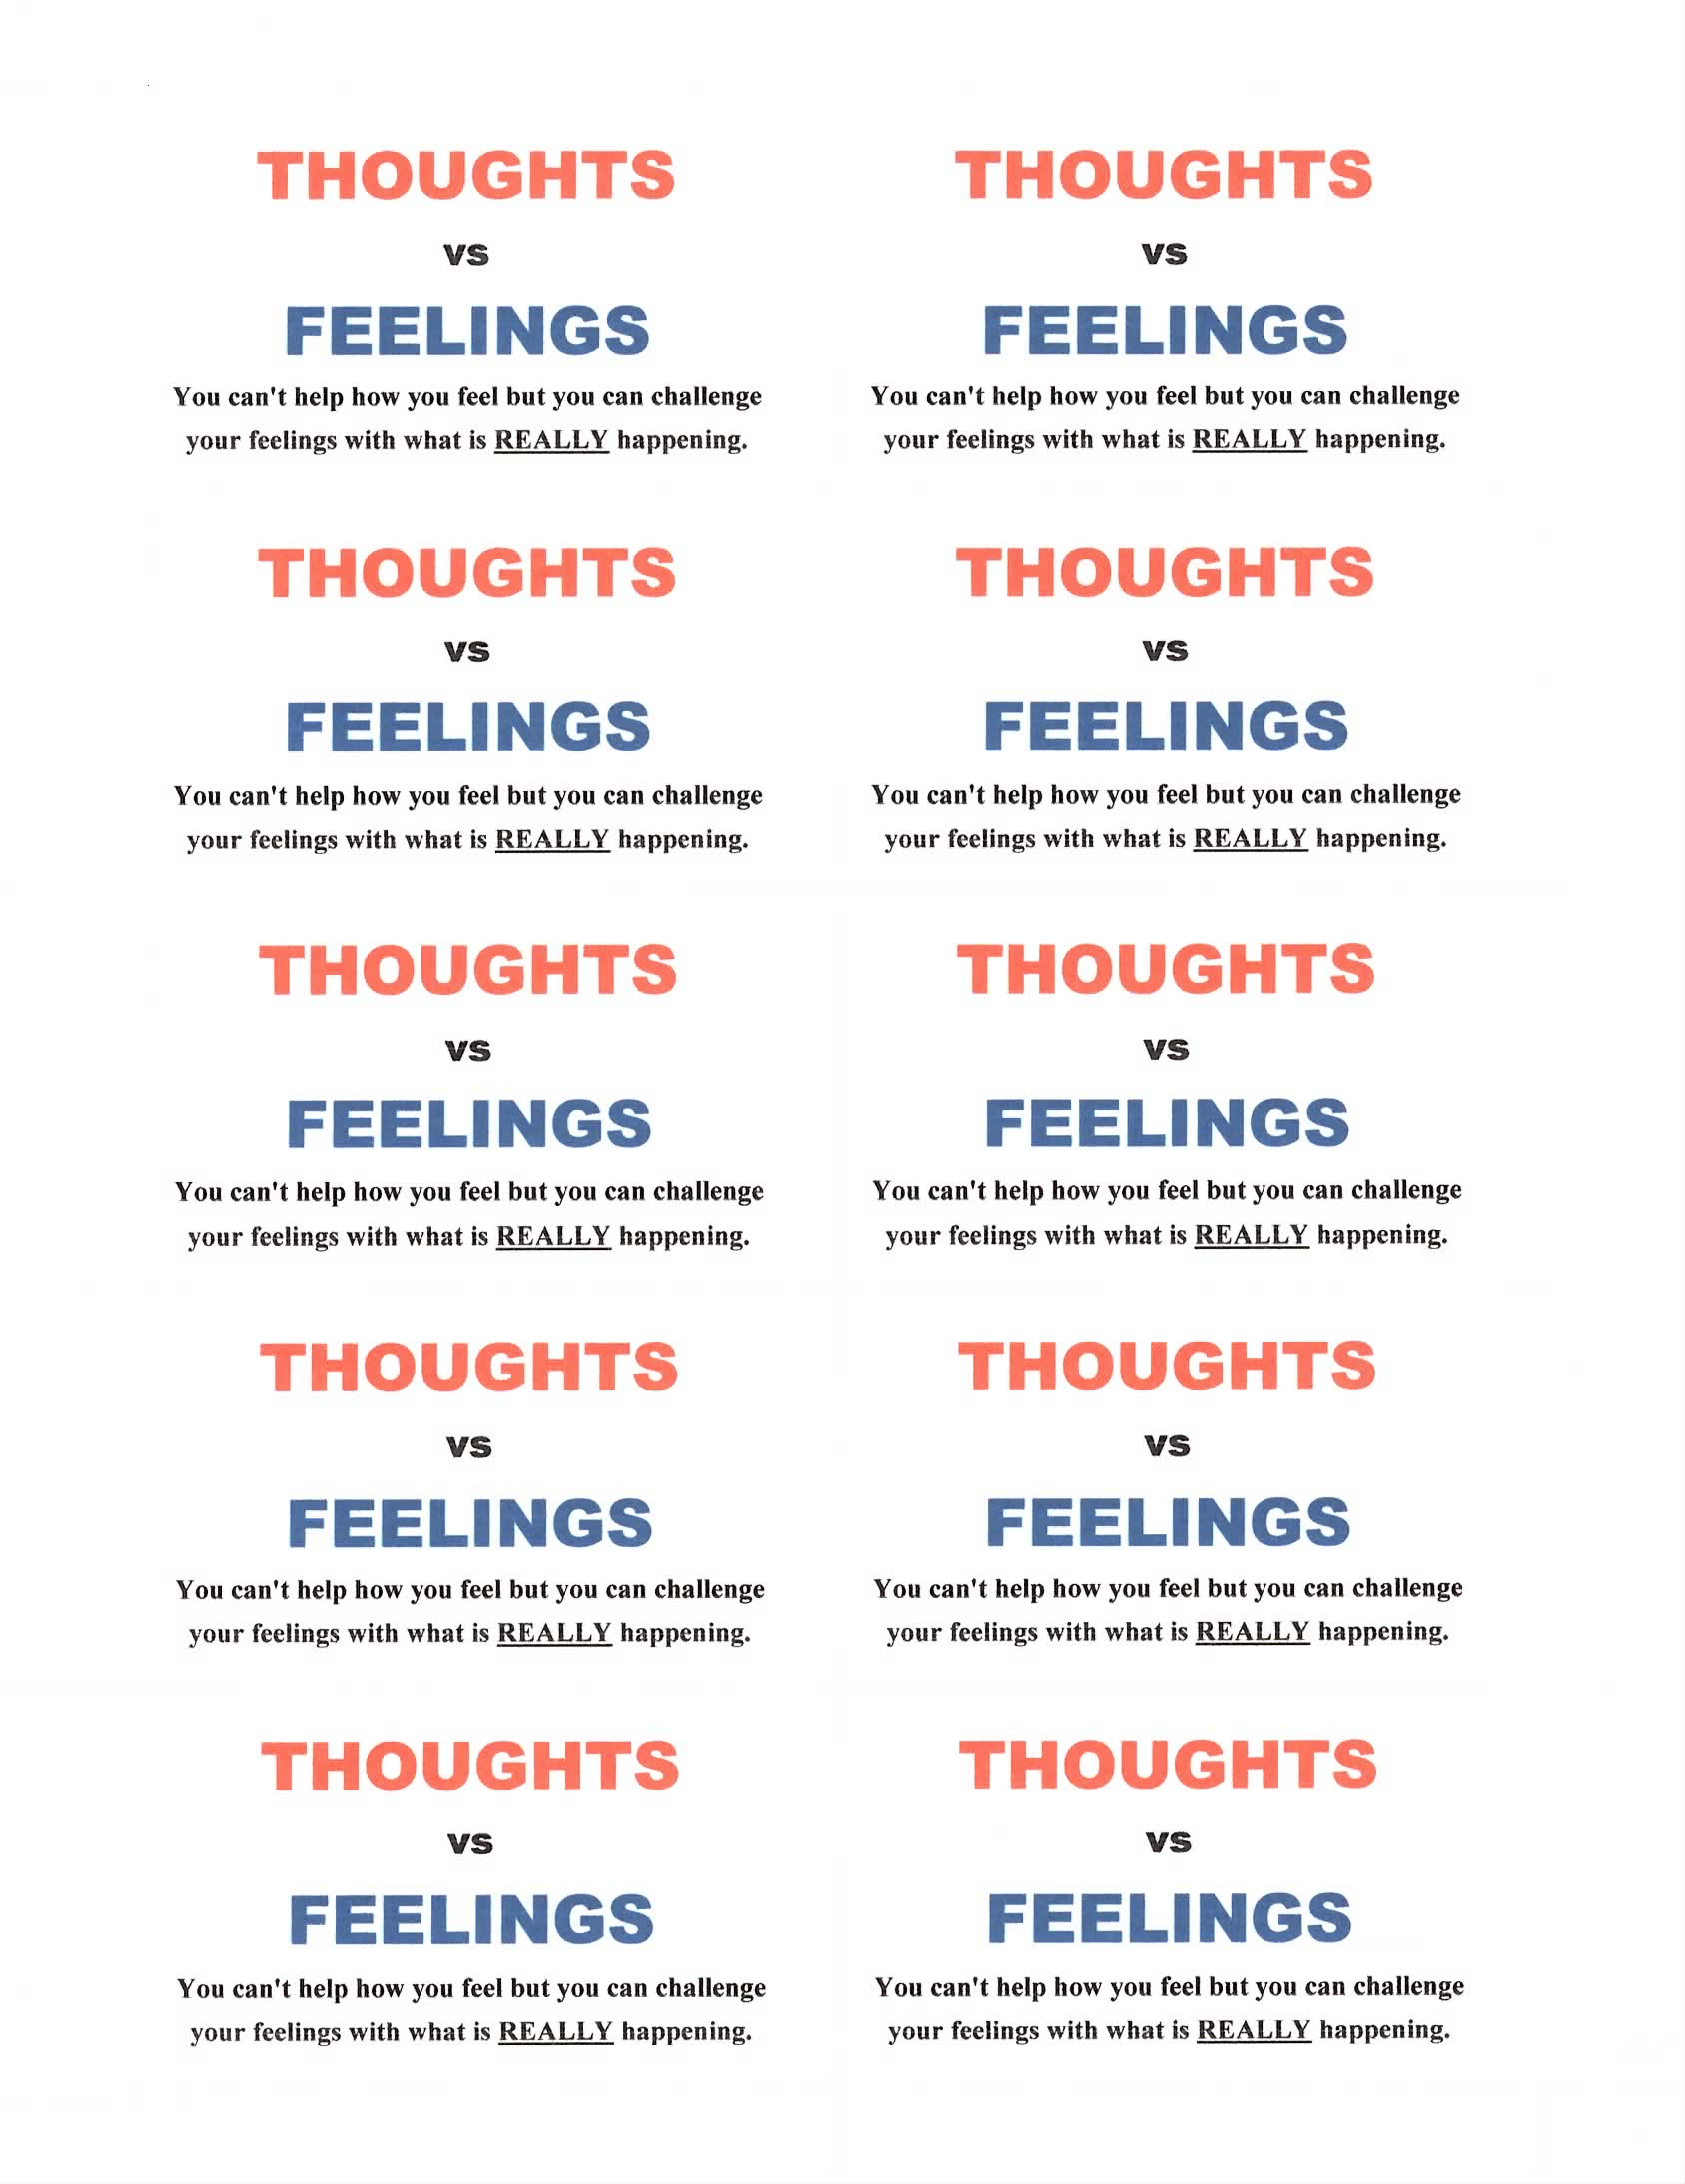 Thought Vs Feelings